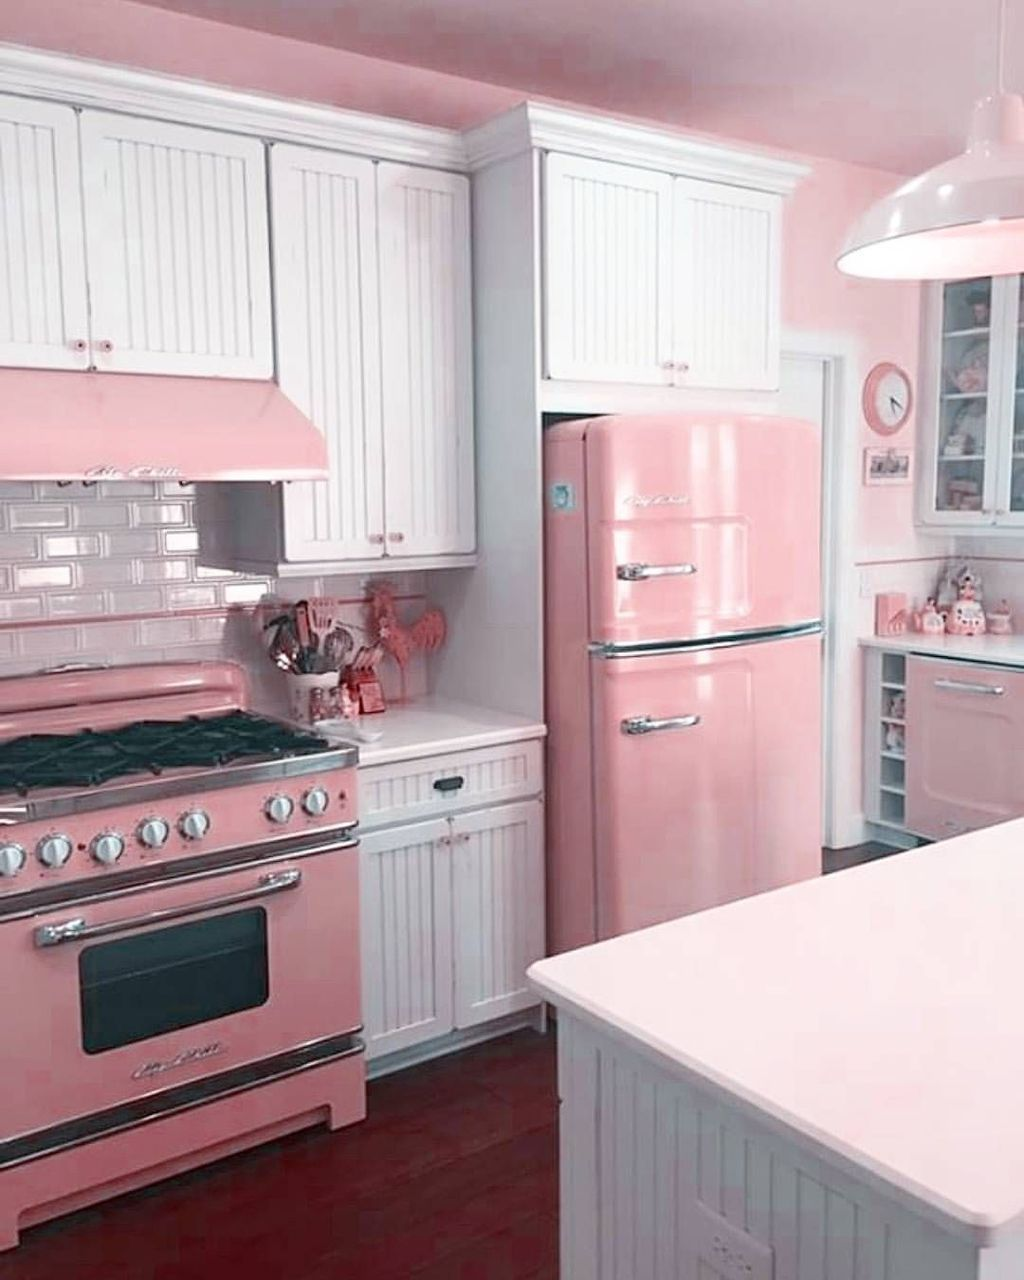 33 Awesome Retro Kitchen Design Ideas Magzhouse Chic Kitchen Decor Shabby Chic Kitchen Pink Kitchen